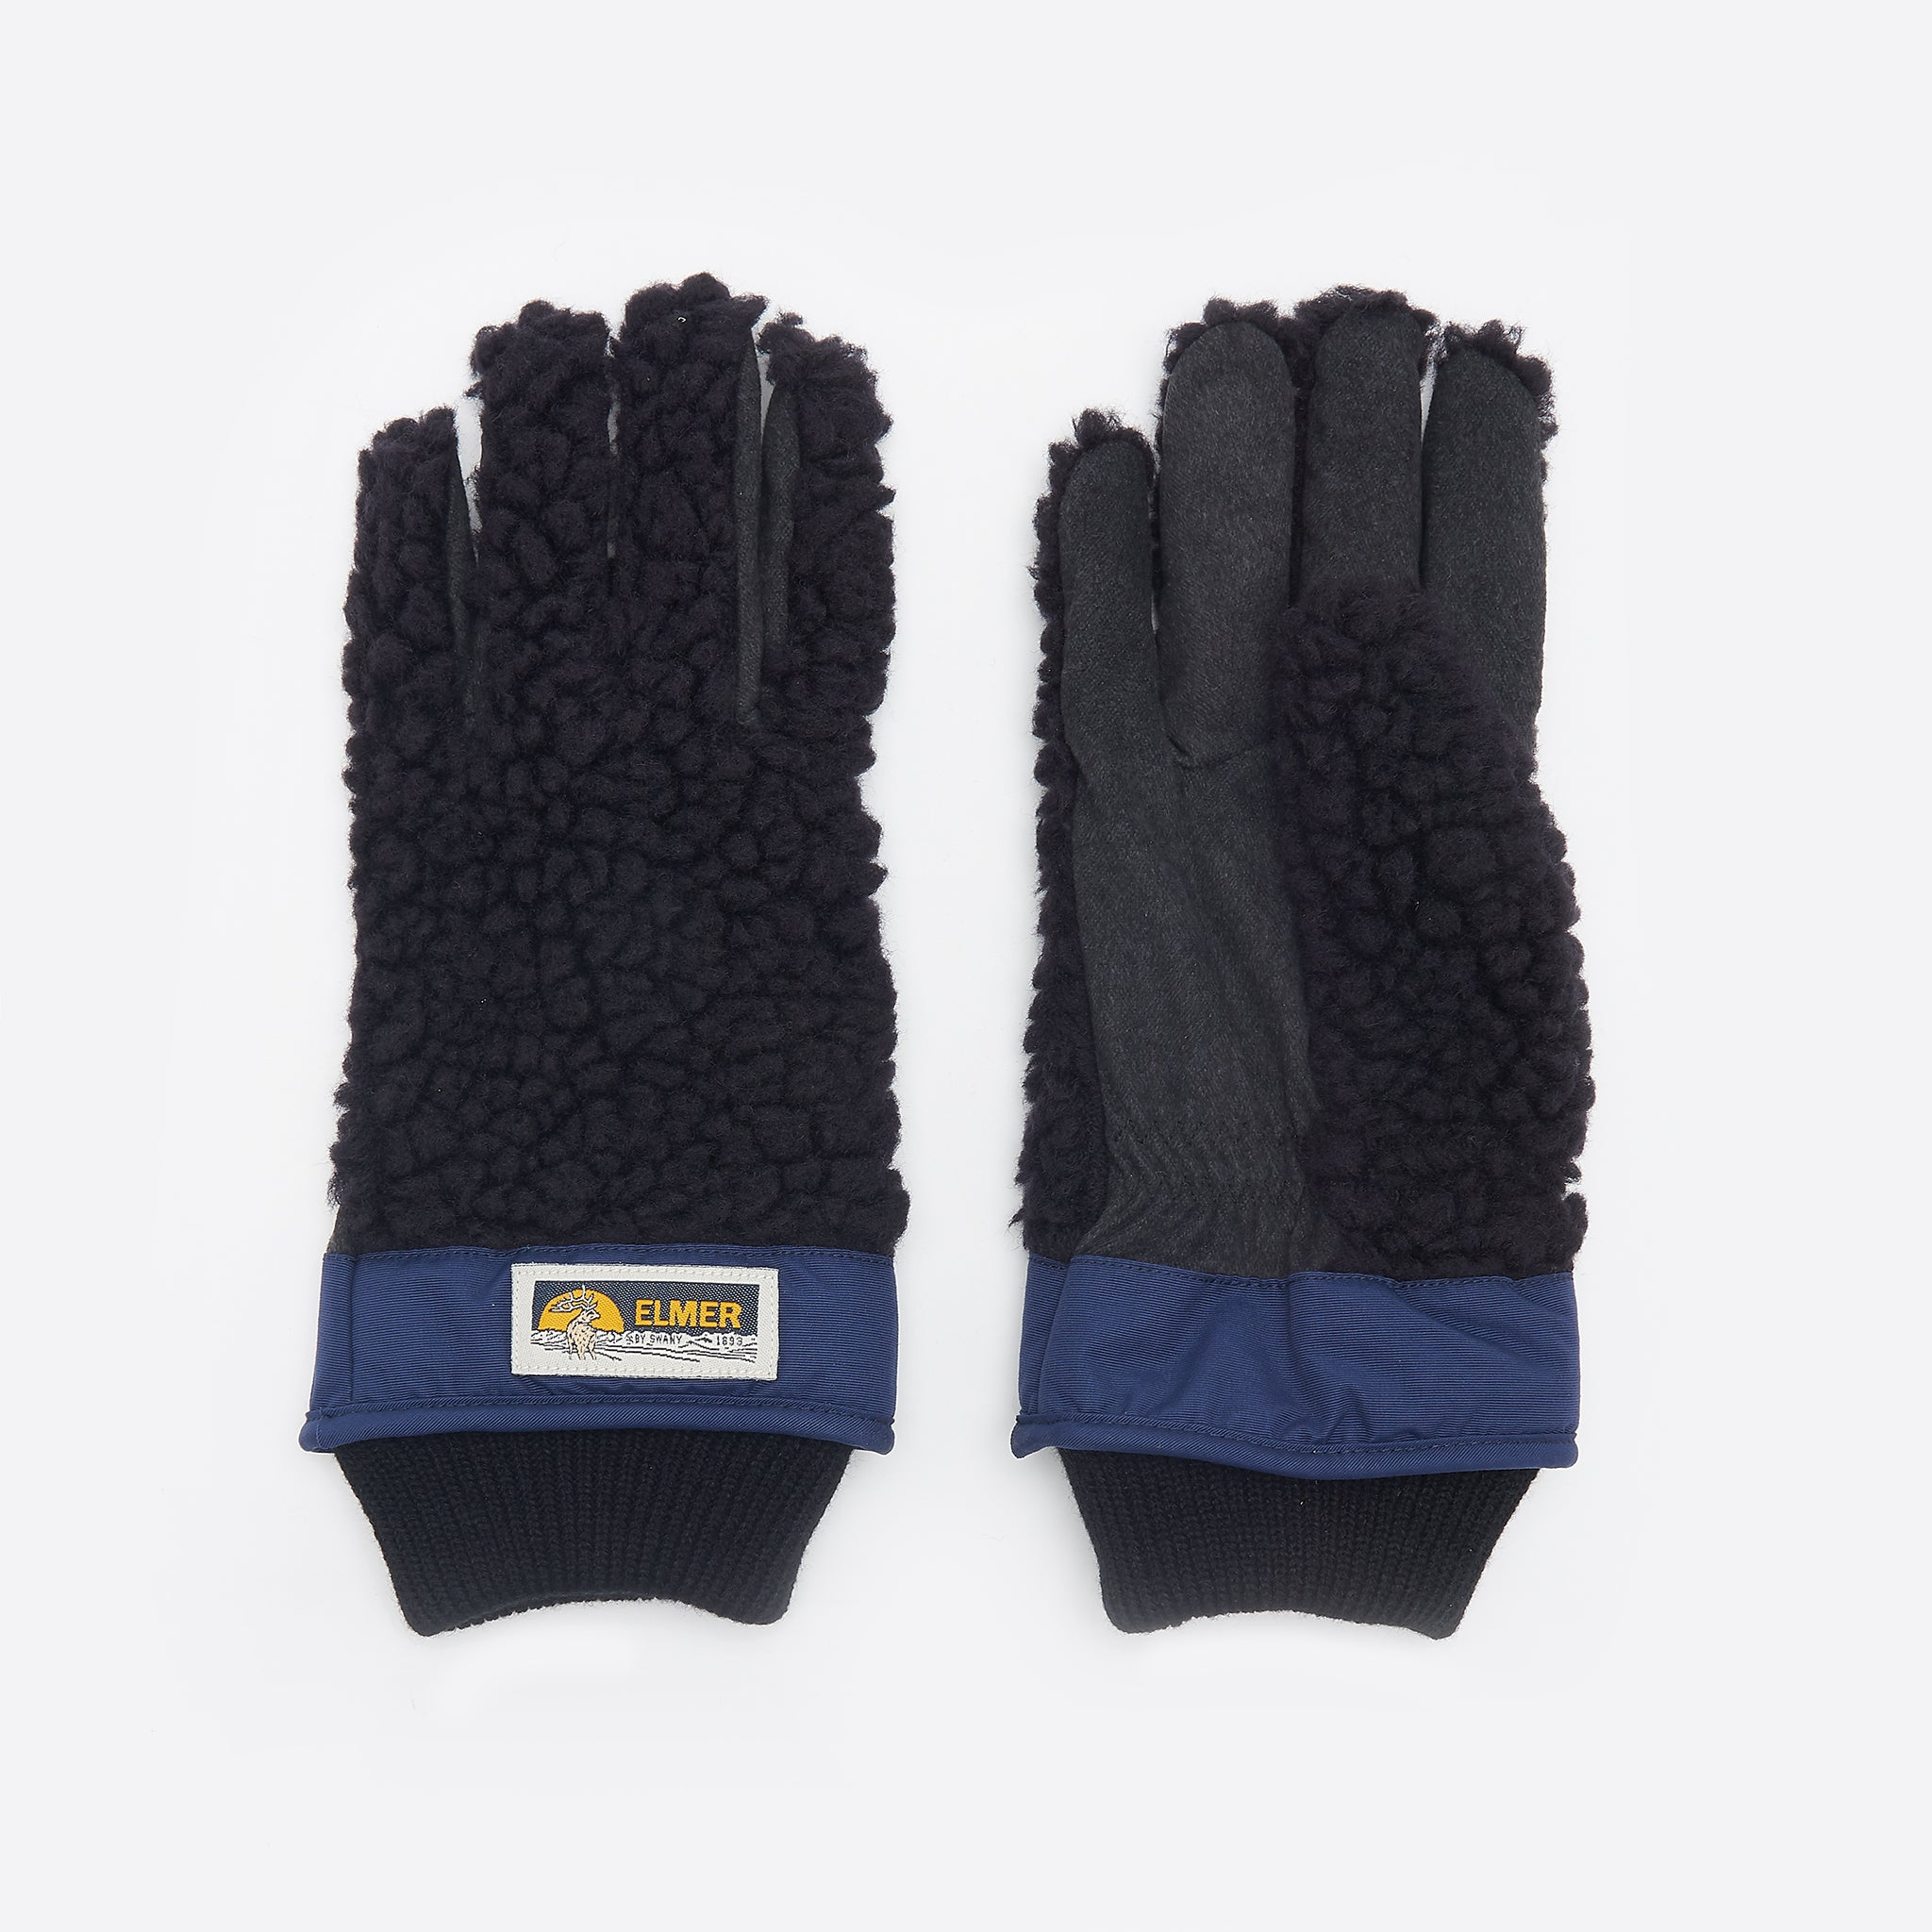 Elmer by Swany Wool Pile Finger Gloves in Black